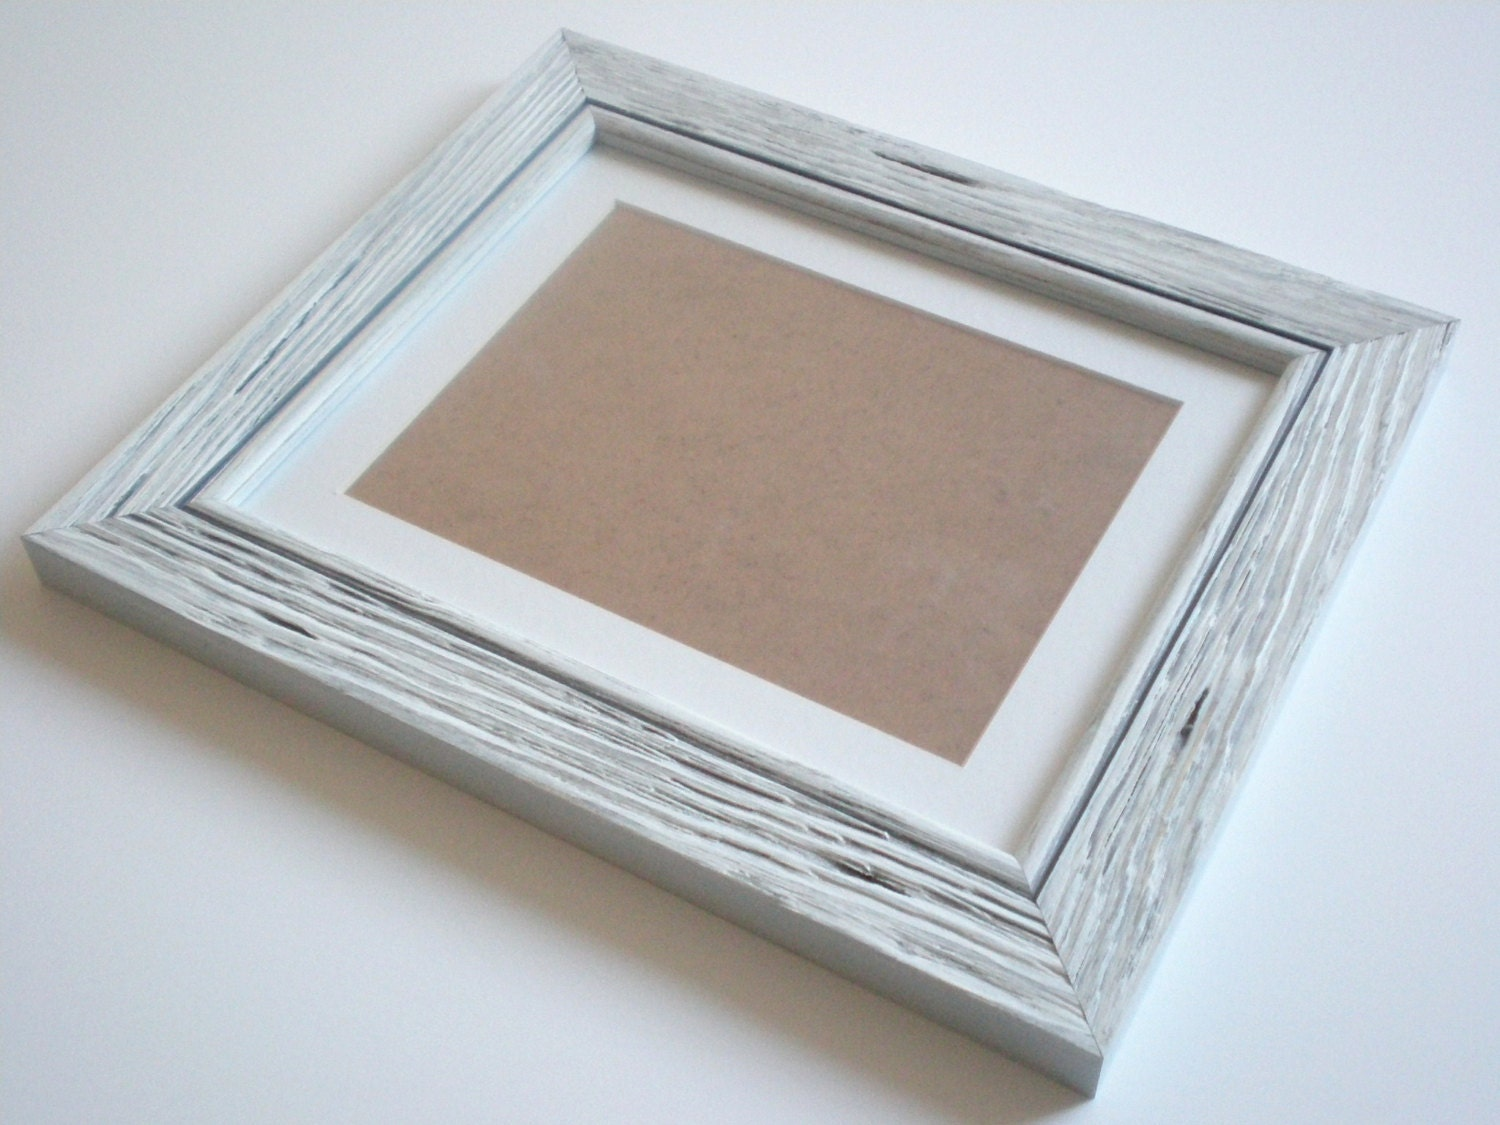 Rustic frame 12x12 white frame picture frame wall decor 30x30cm picture frame 12x16 frame distressed frame rustic frame photo frame driftwood frame cottage frame white frame rusticframeshop jeuxipadfo Choice Image